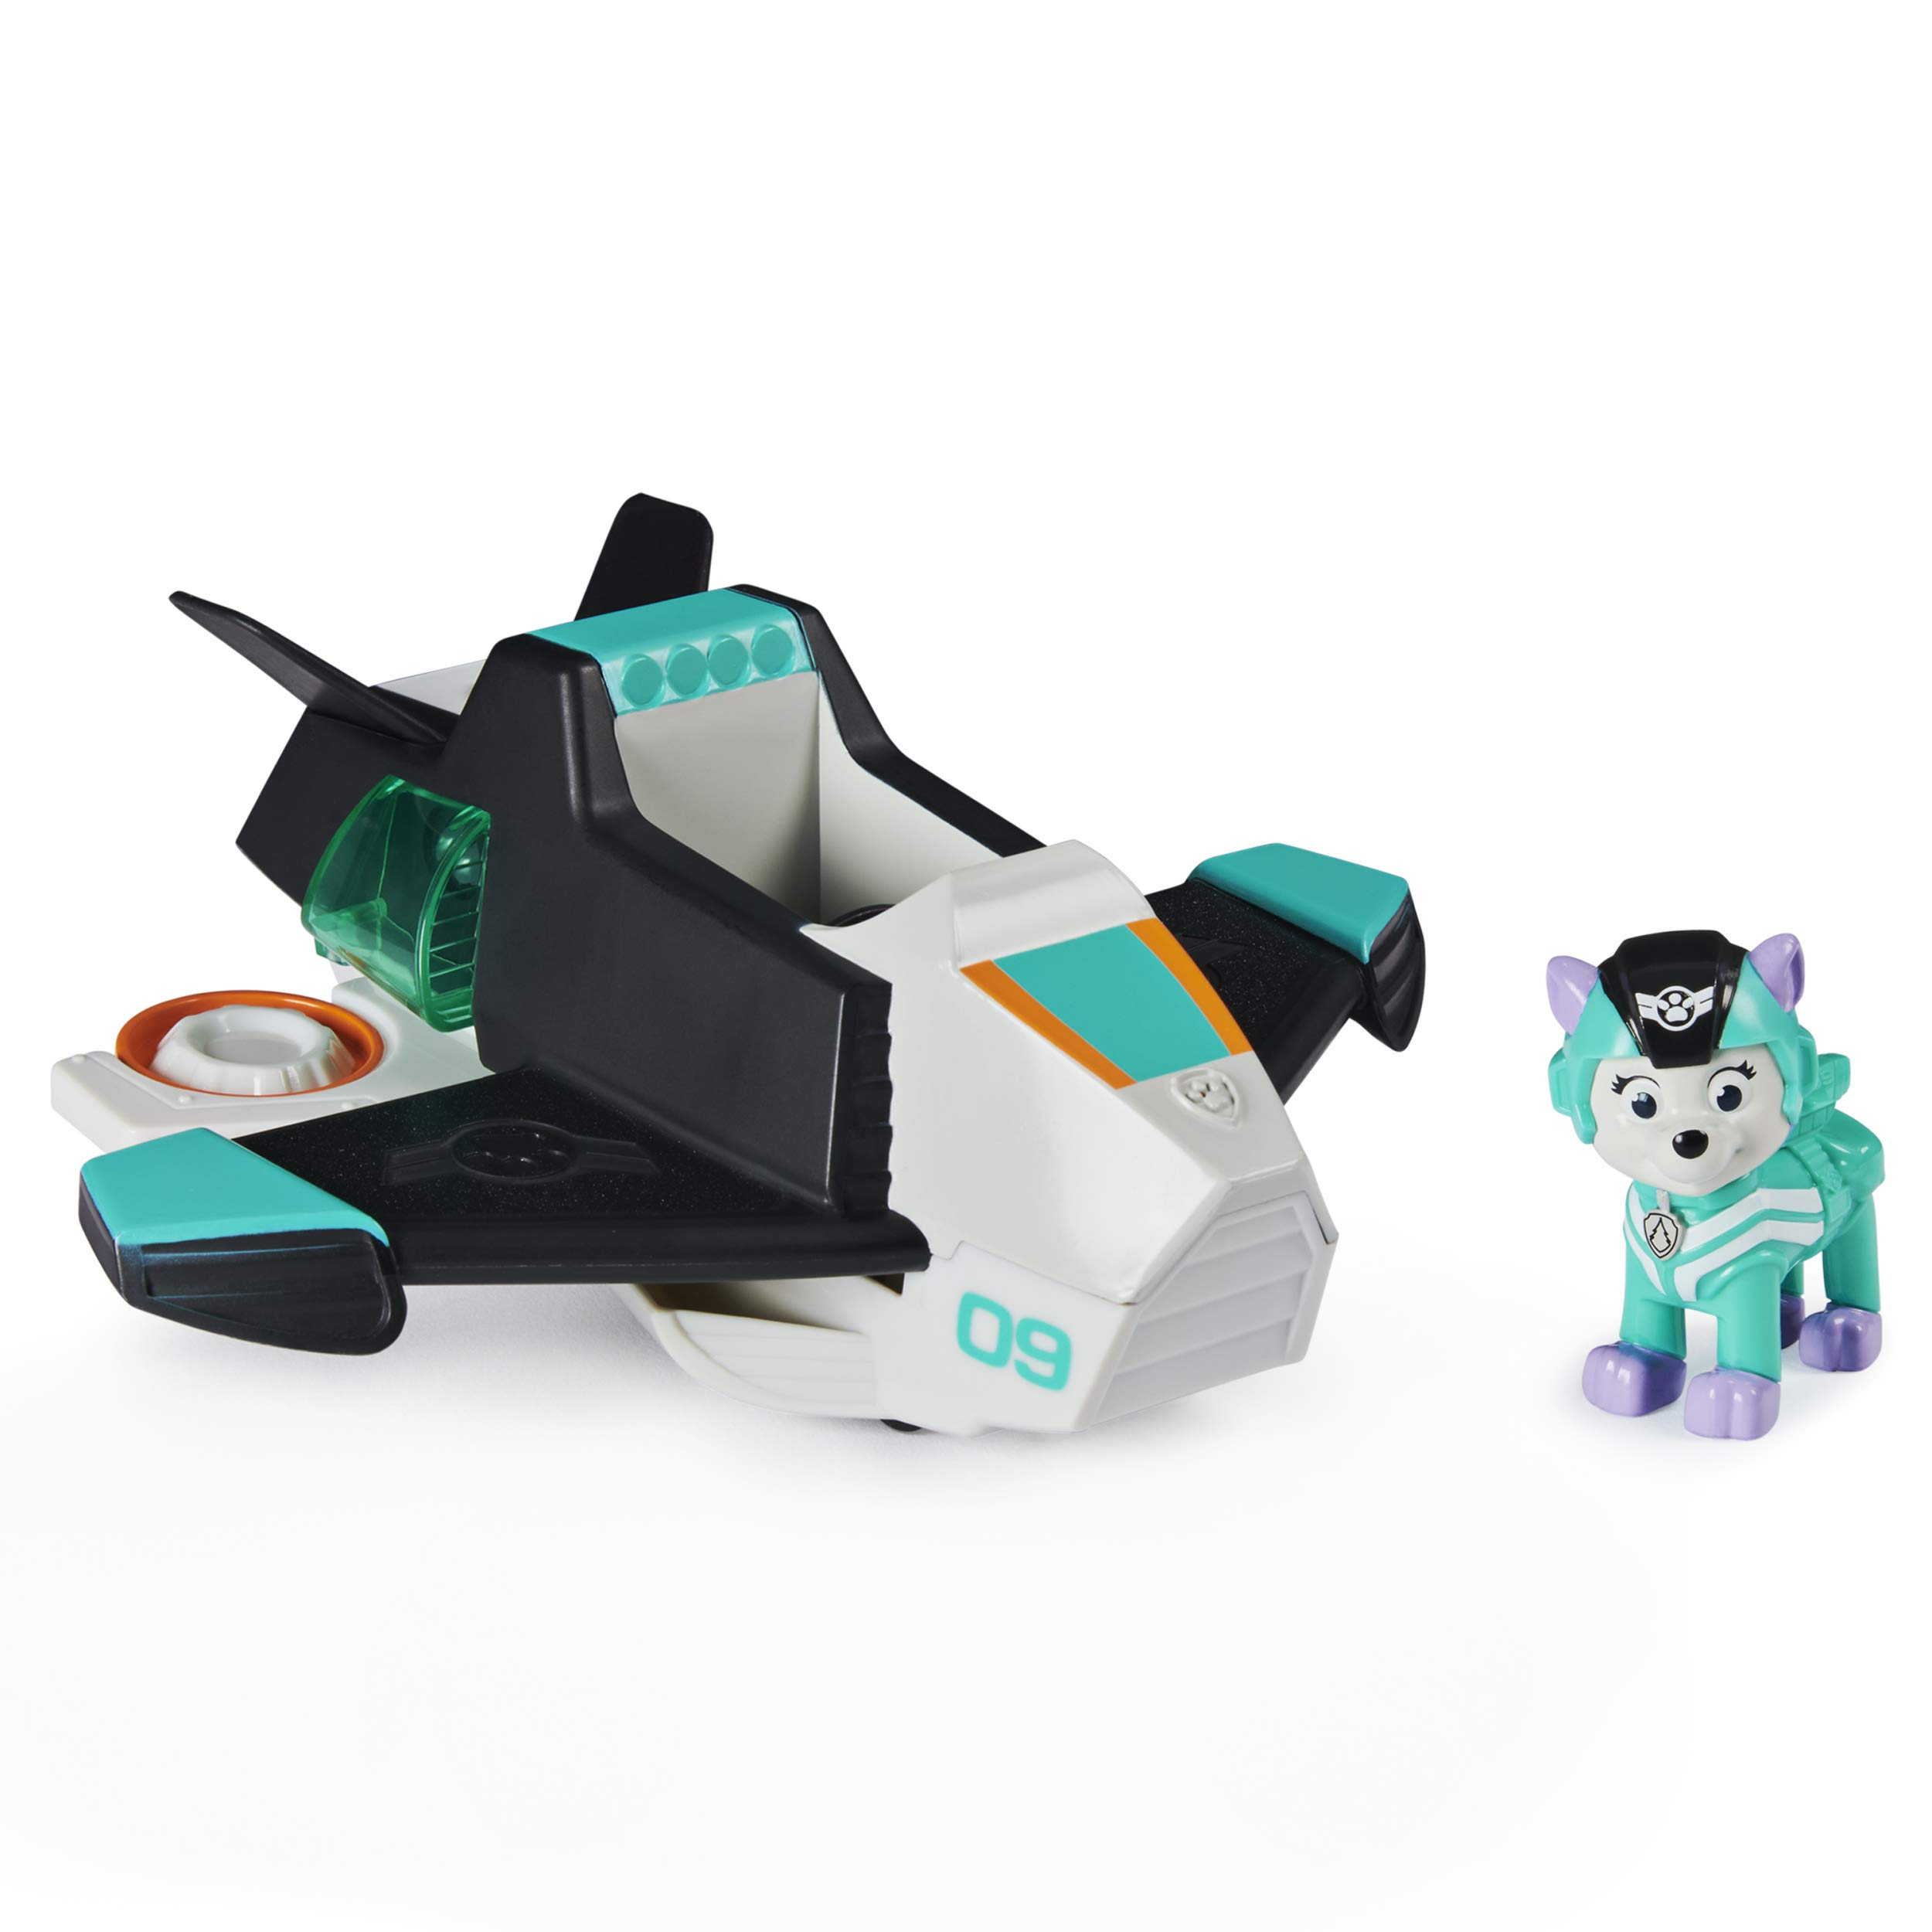 Paw Patrol, Jet to The Rescue Everest Deluxe Transforming Vehicle with Lights and Sounds, Amazon Exclusive